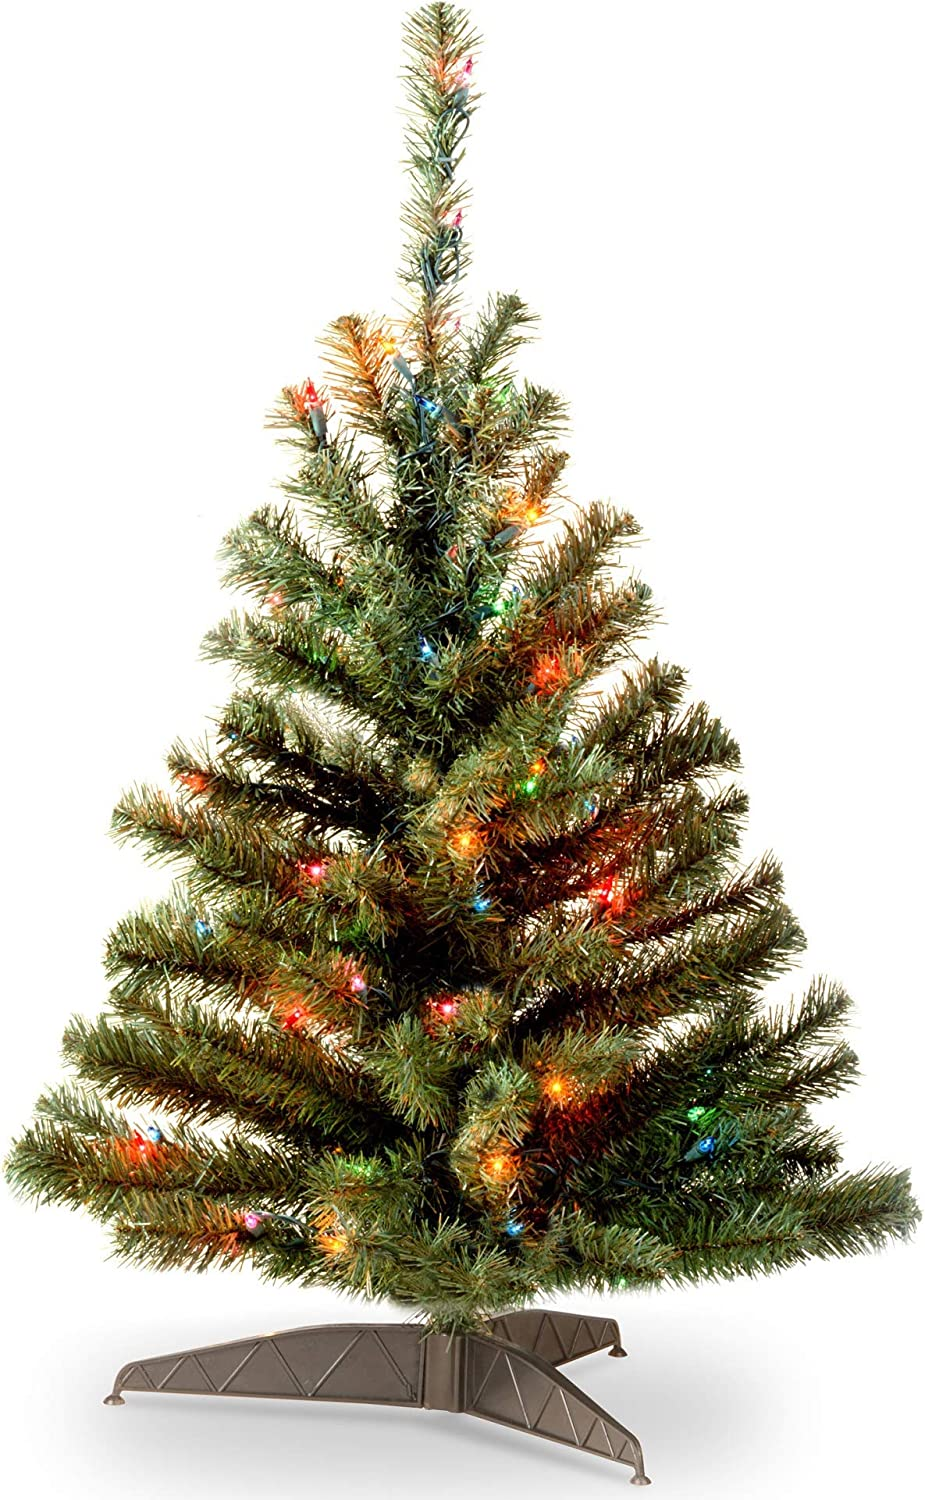 3' Pre-lit Kincaid Spruce Artificial Christmas Tree –Multicolored Lights